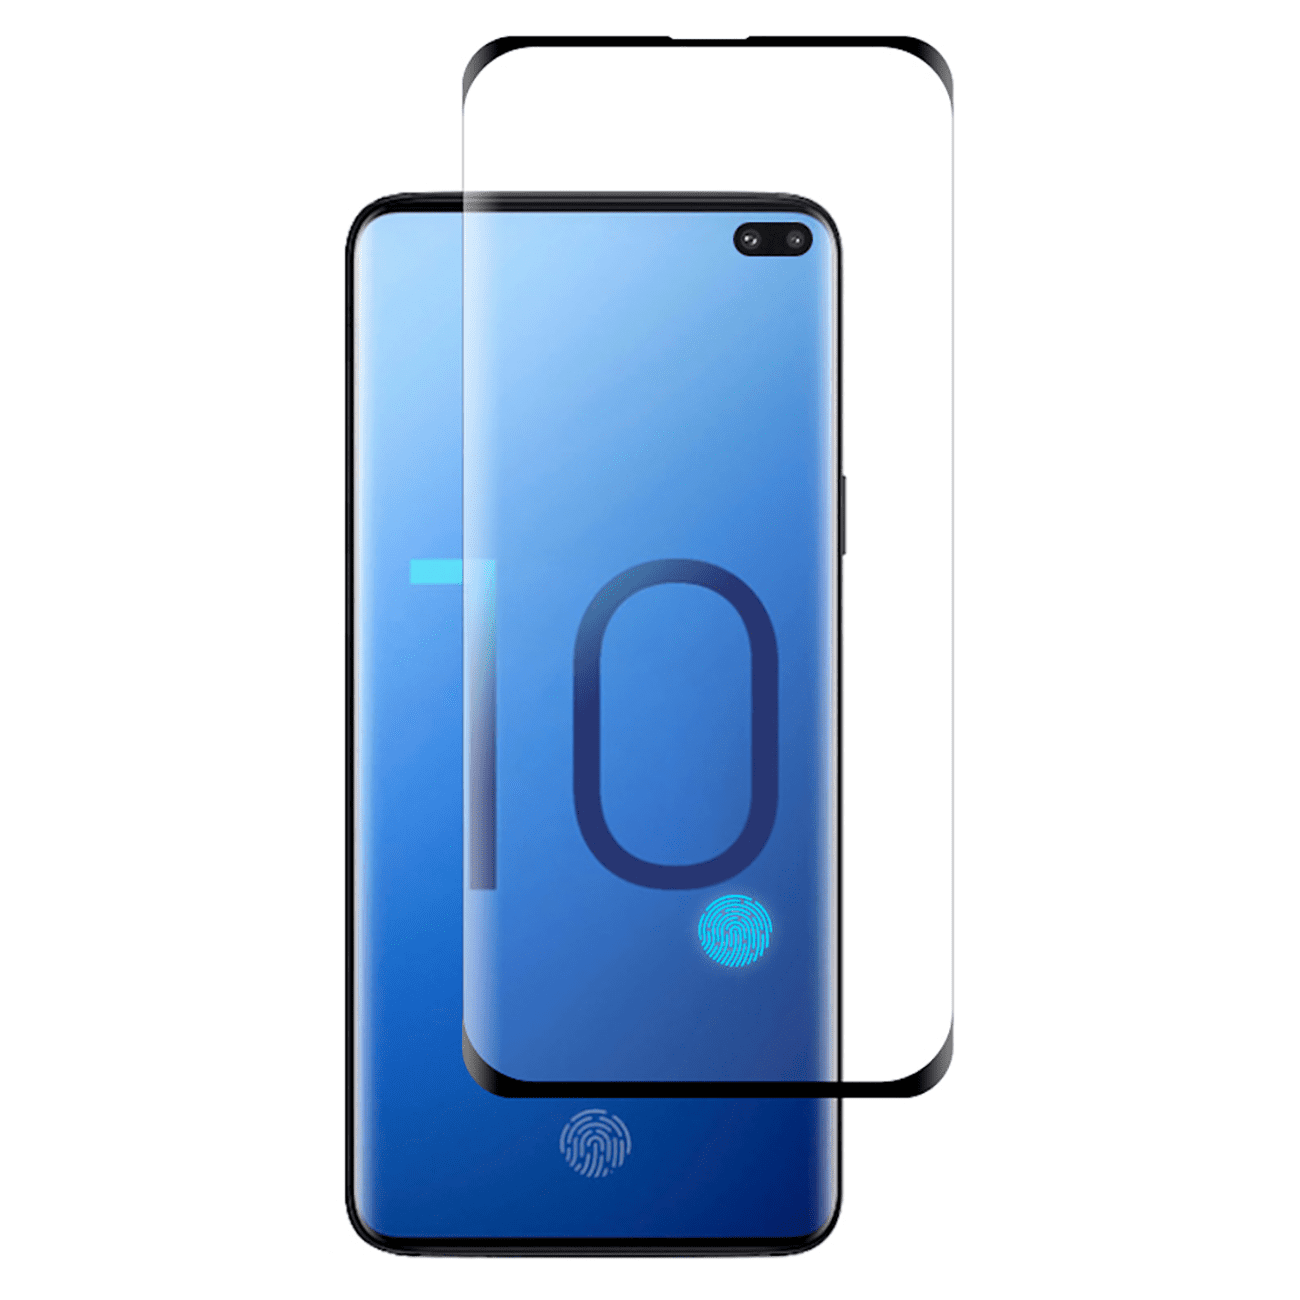 ISTIK SAMSUNG GALAXY S10 Plus 3D CURVED FULL COVERAGE TEMPERED GLASS SCREEN PROTECTOR